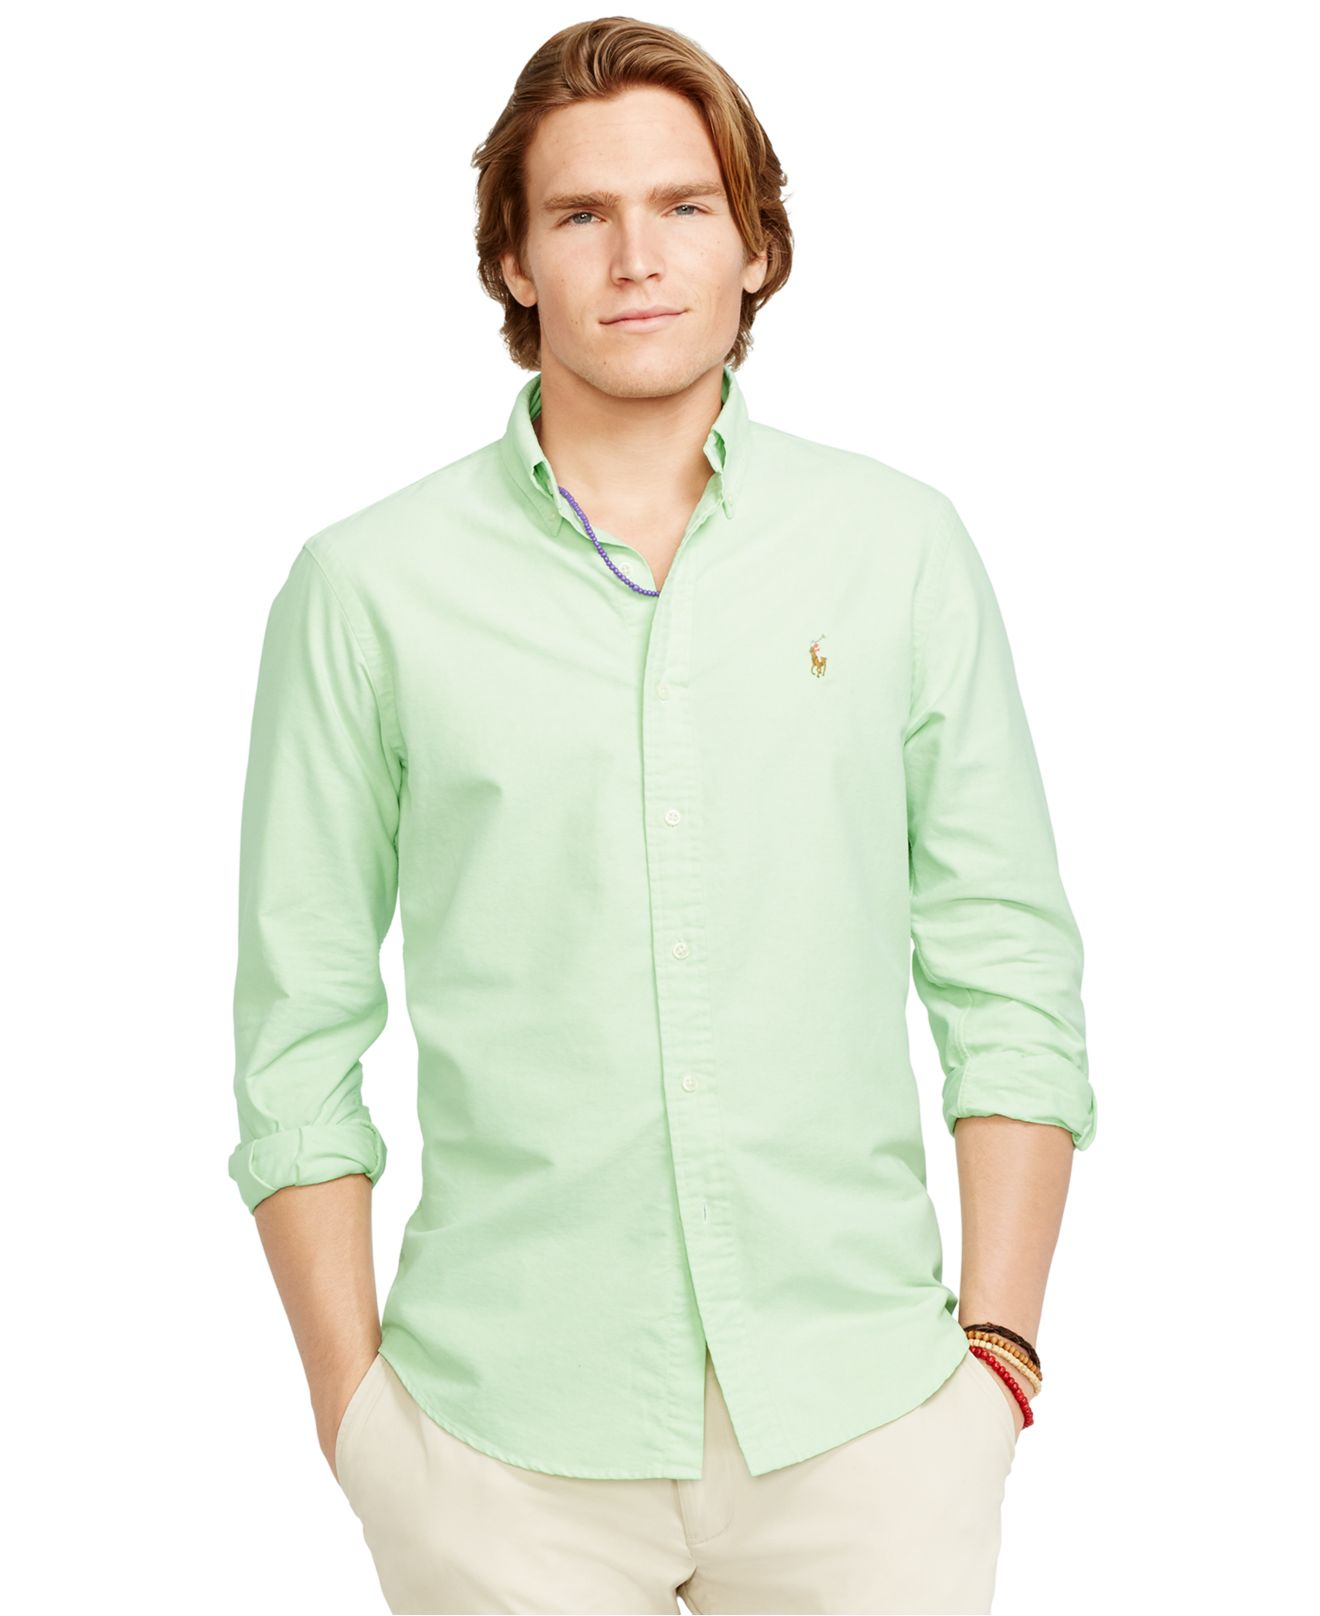 f243ef8bf Polo Ralph Lauren Solid Oxford Shirt in Green for Men - Lyst